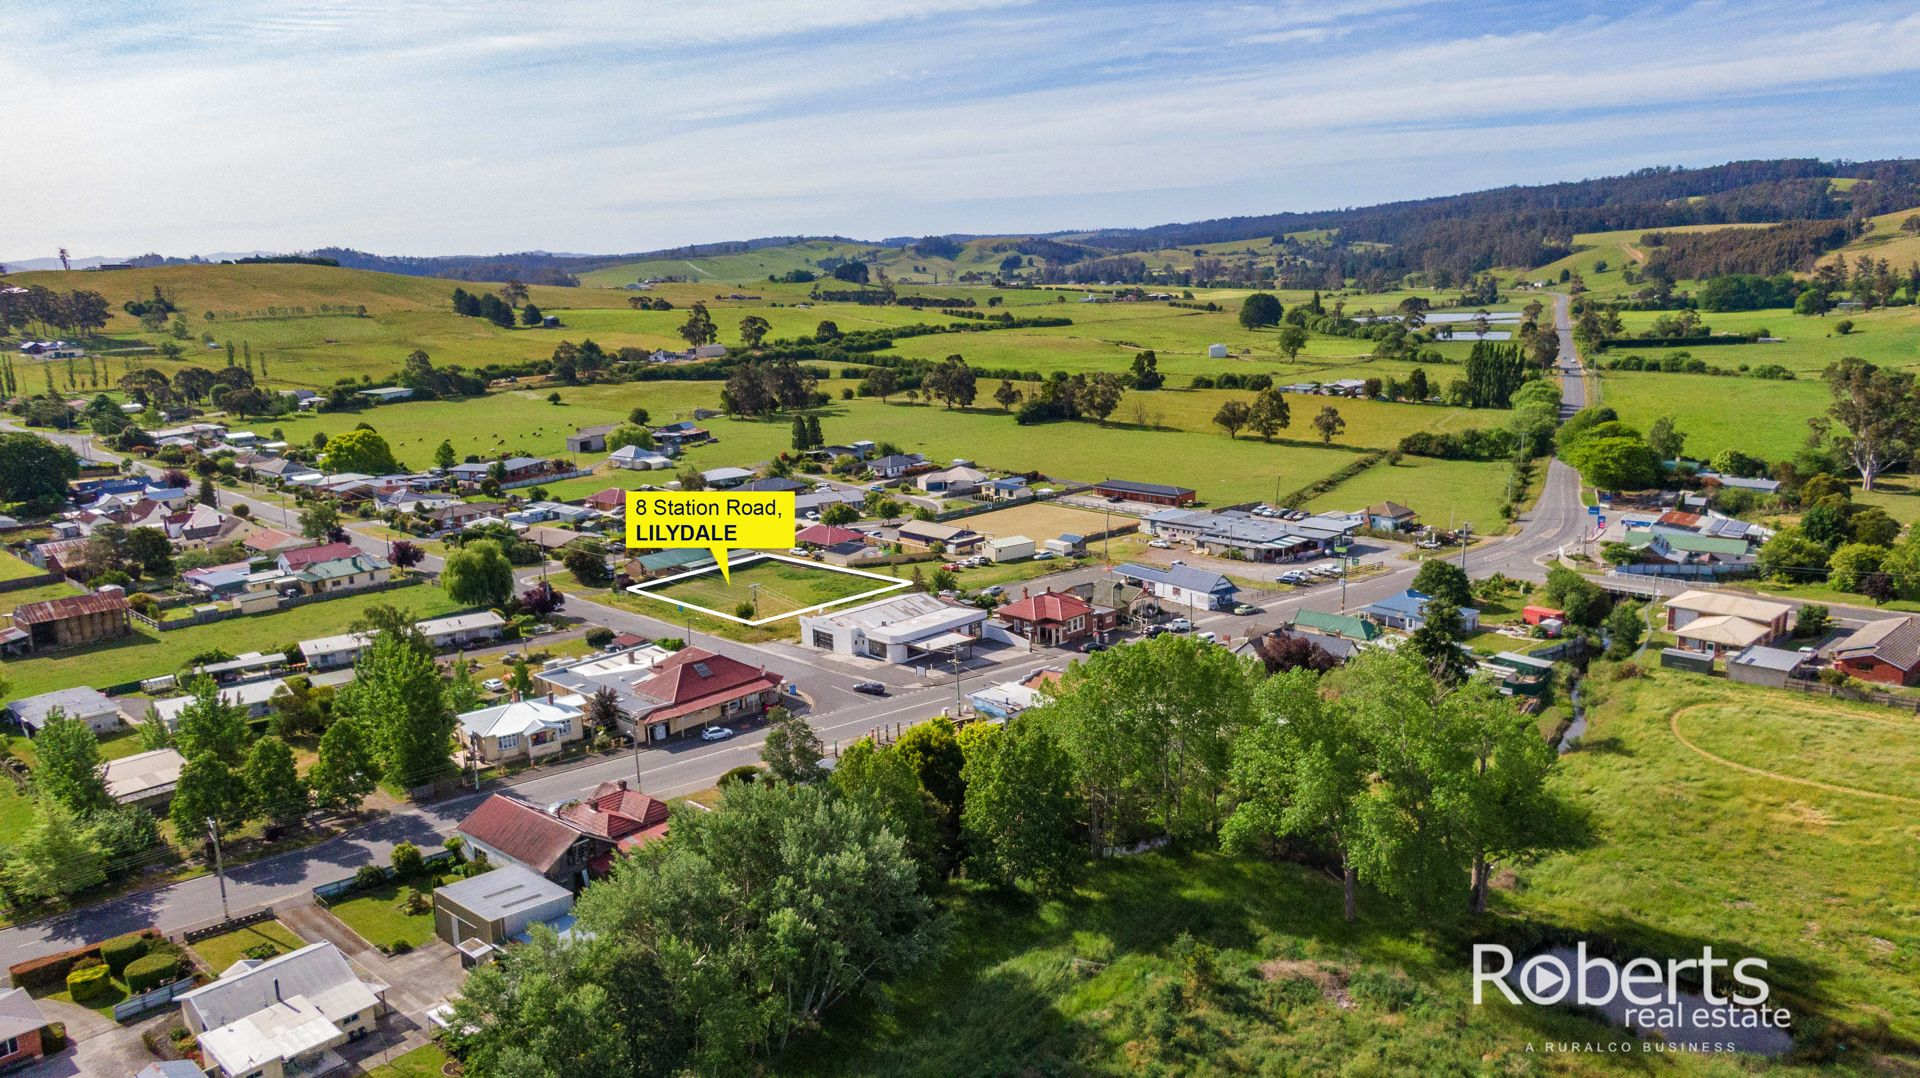 8 Station Road, Lilydale